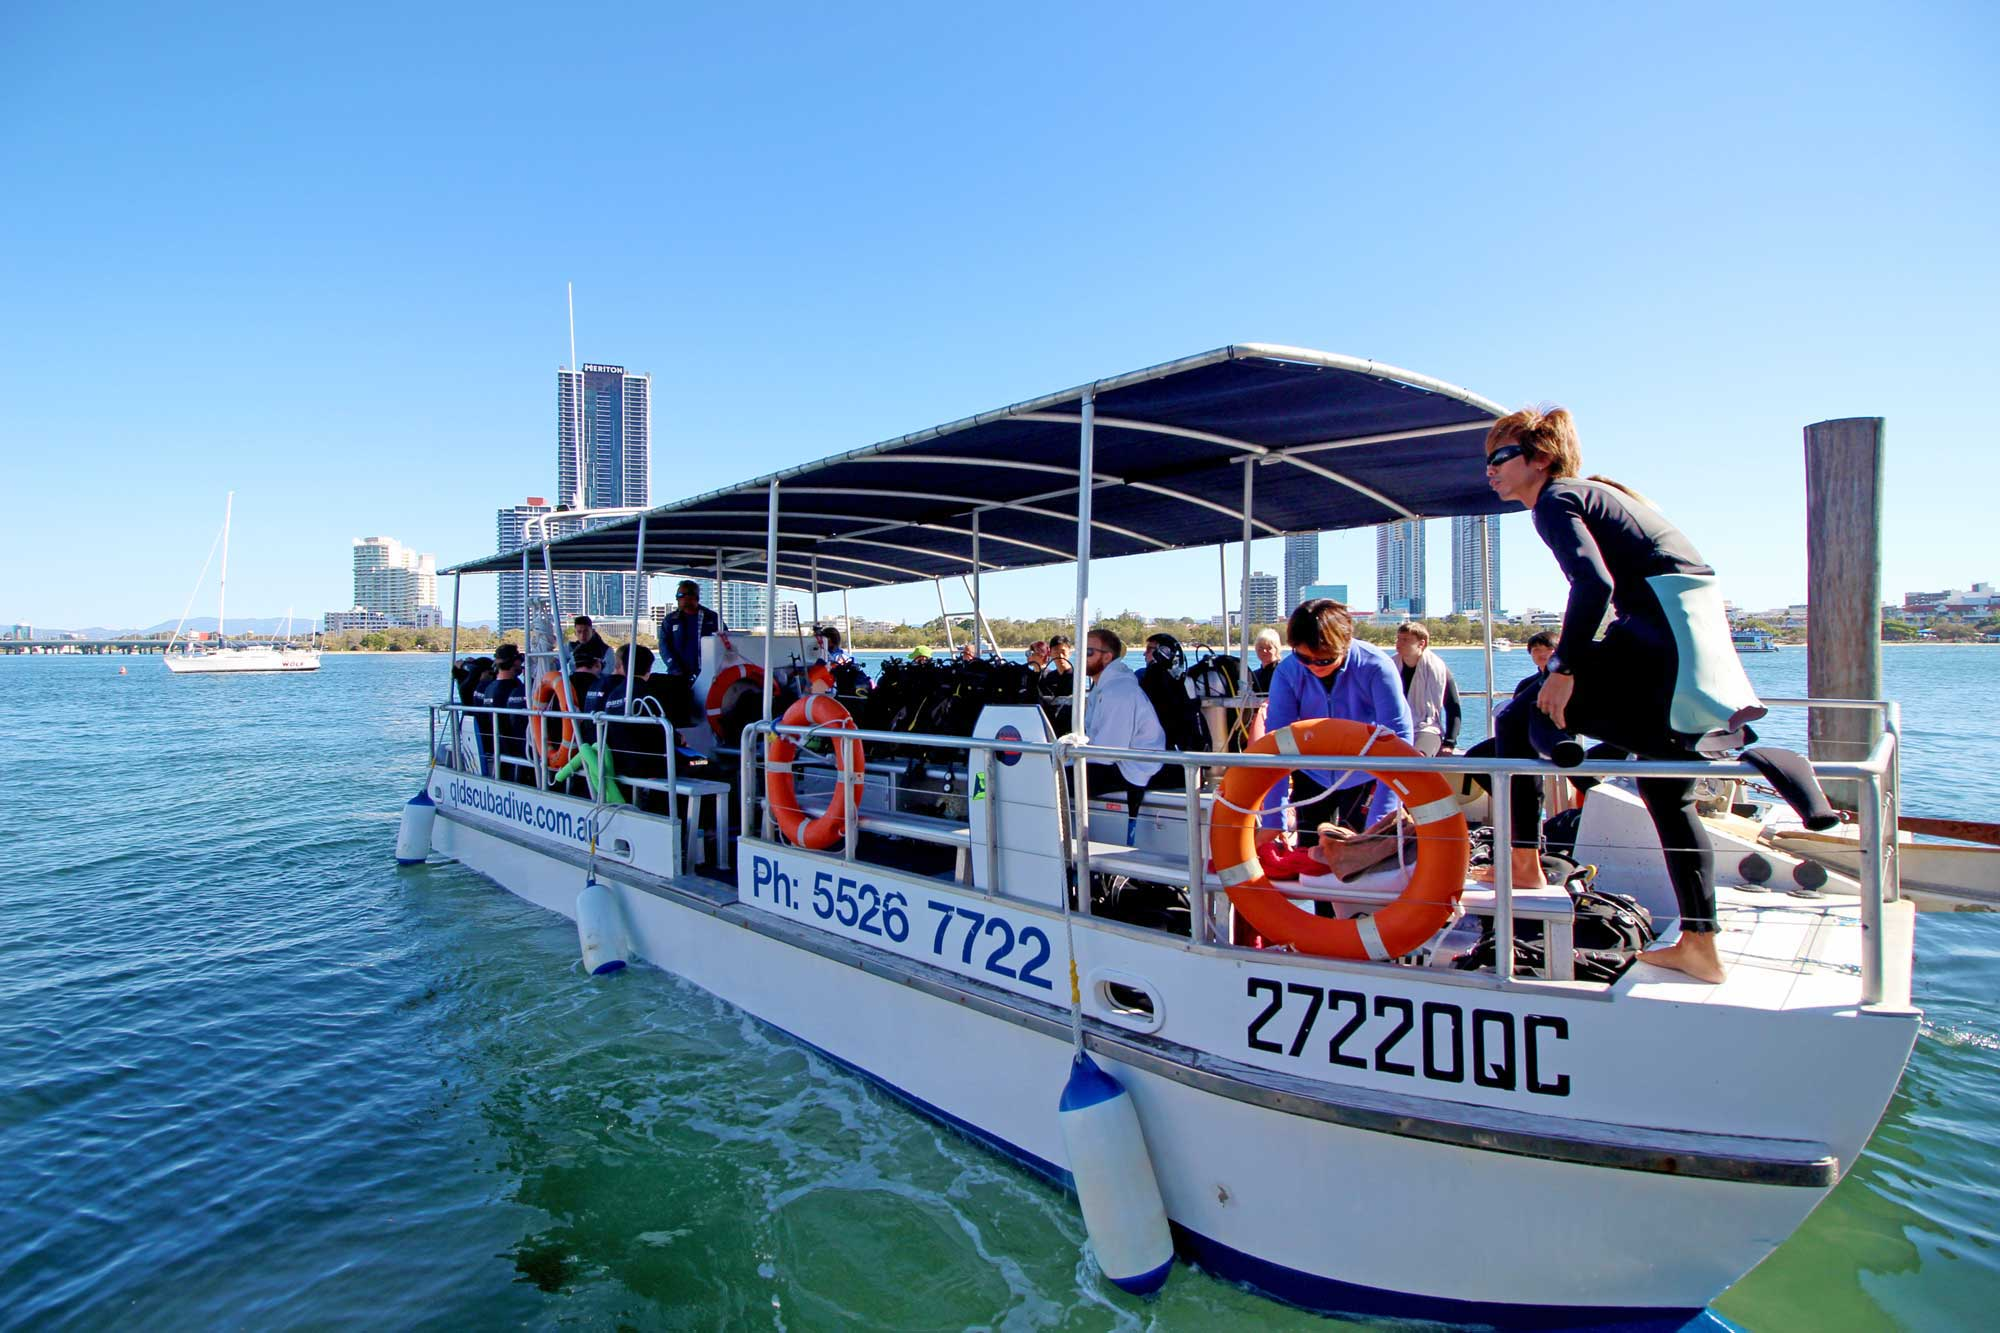 Gold Coast Scuba Diving Boat departing with customers onboard